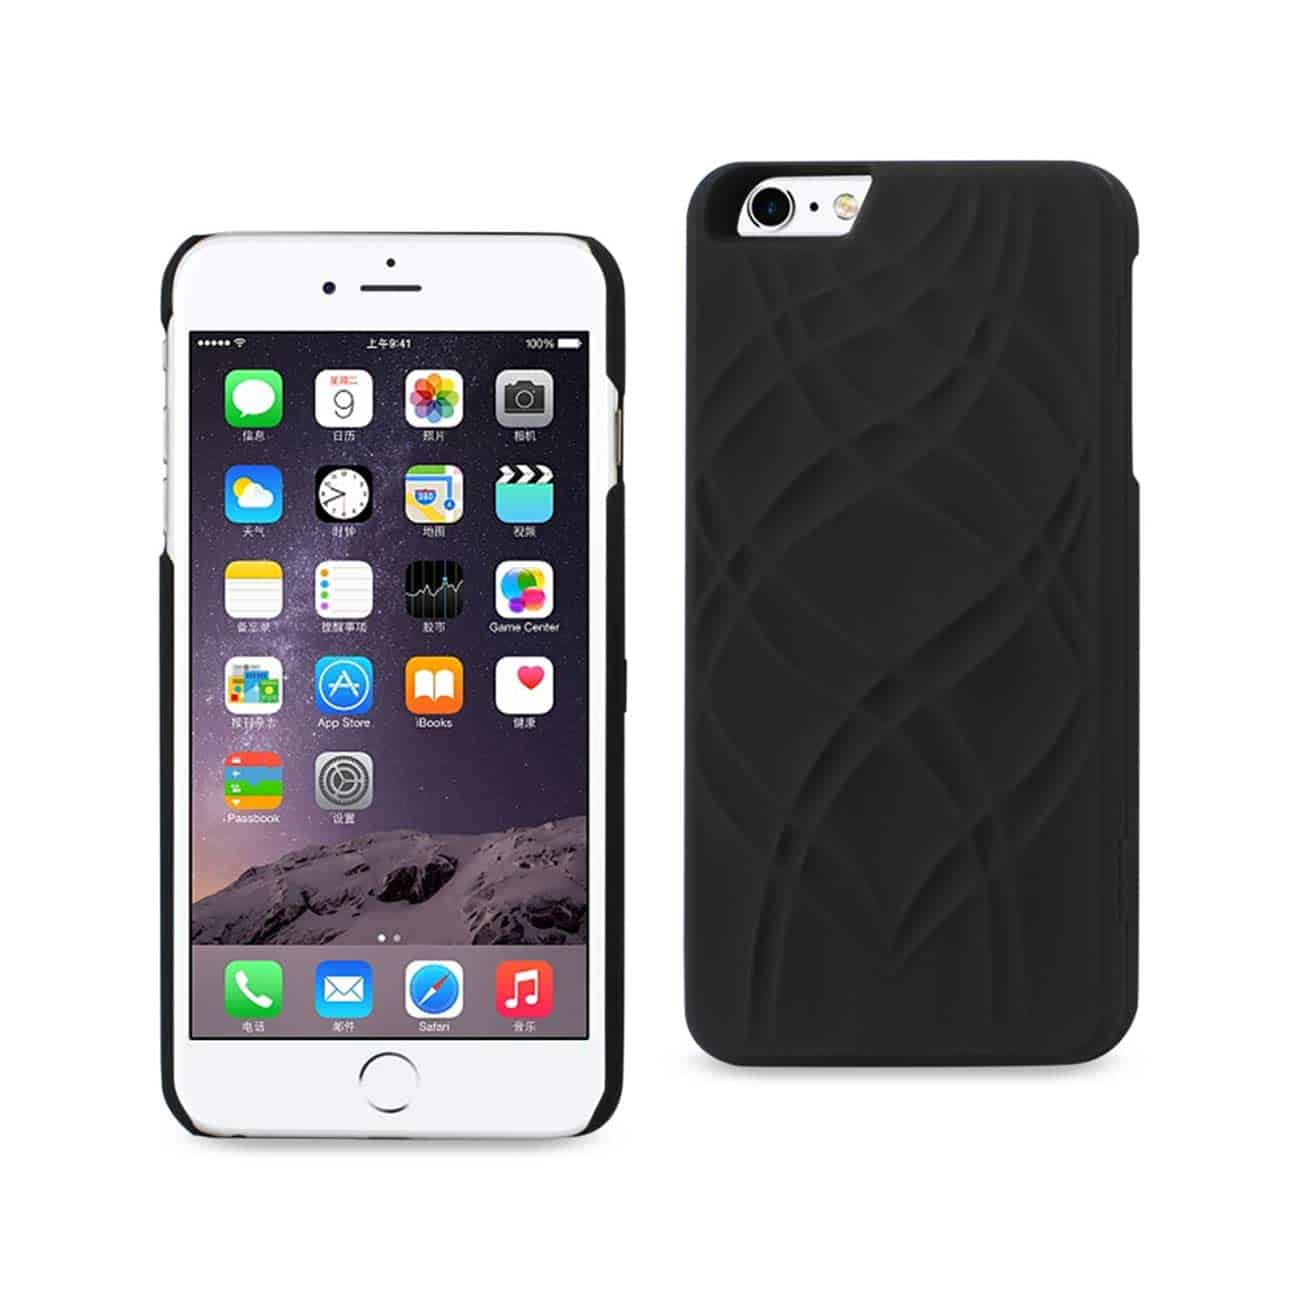 IPHONE 6 PLUS/ 6S PLUS HIDDEN MIRROR WALLET CASE WITH KICKSTAND FUNCTION IN BLACK